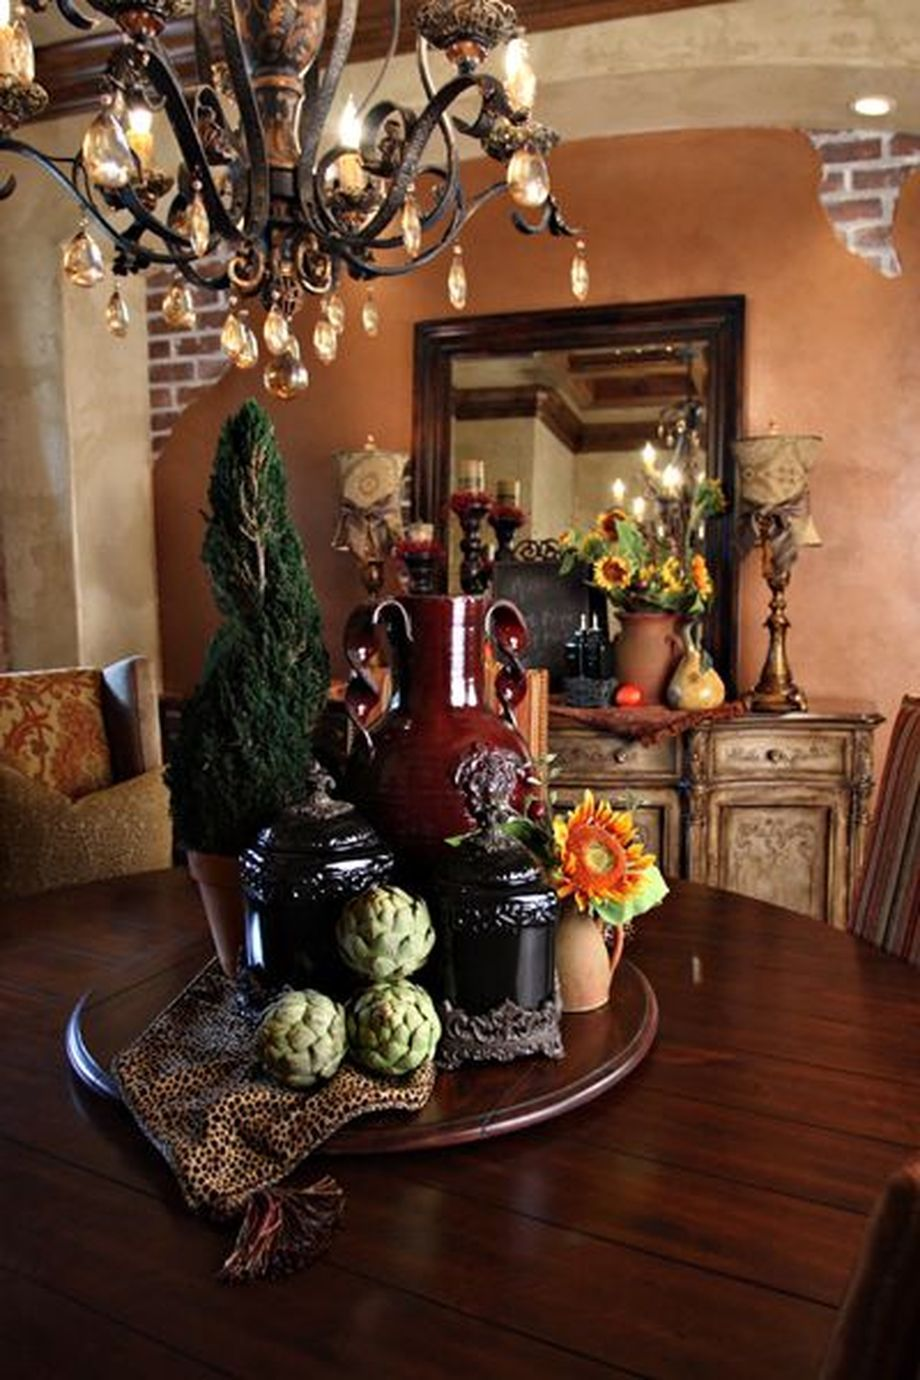 Glorious Rustic Interior With Italian Tuscan Style Decorations Hoommy Com Rustic Italian Decor Tuscan Decorating Tuscan Dining Rooms,Tablet Charging Station Ideas